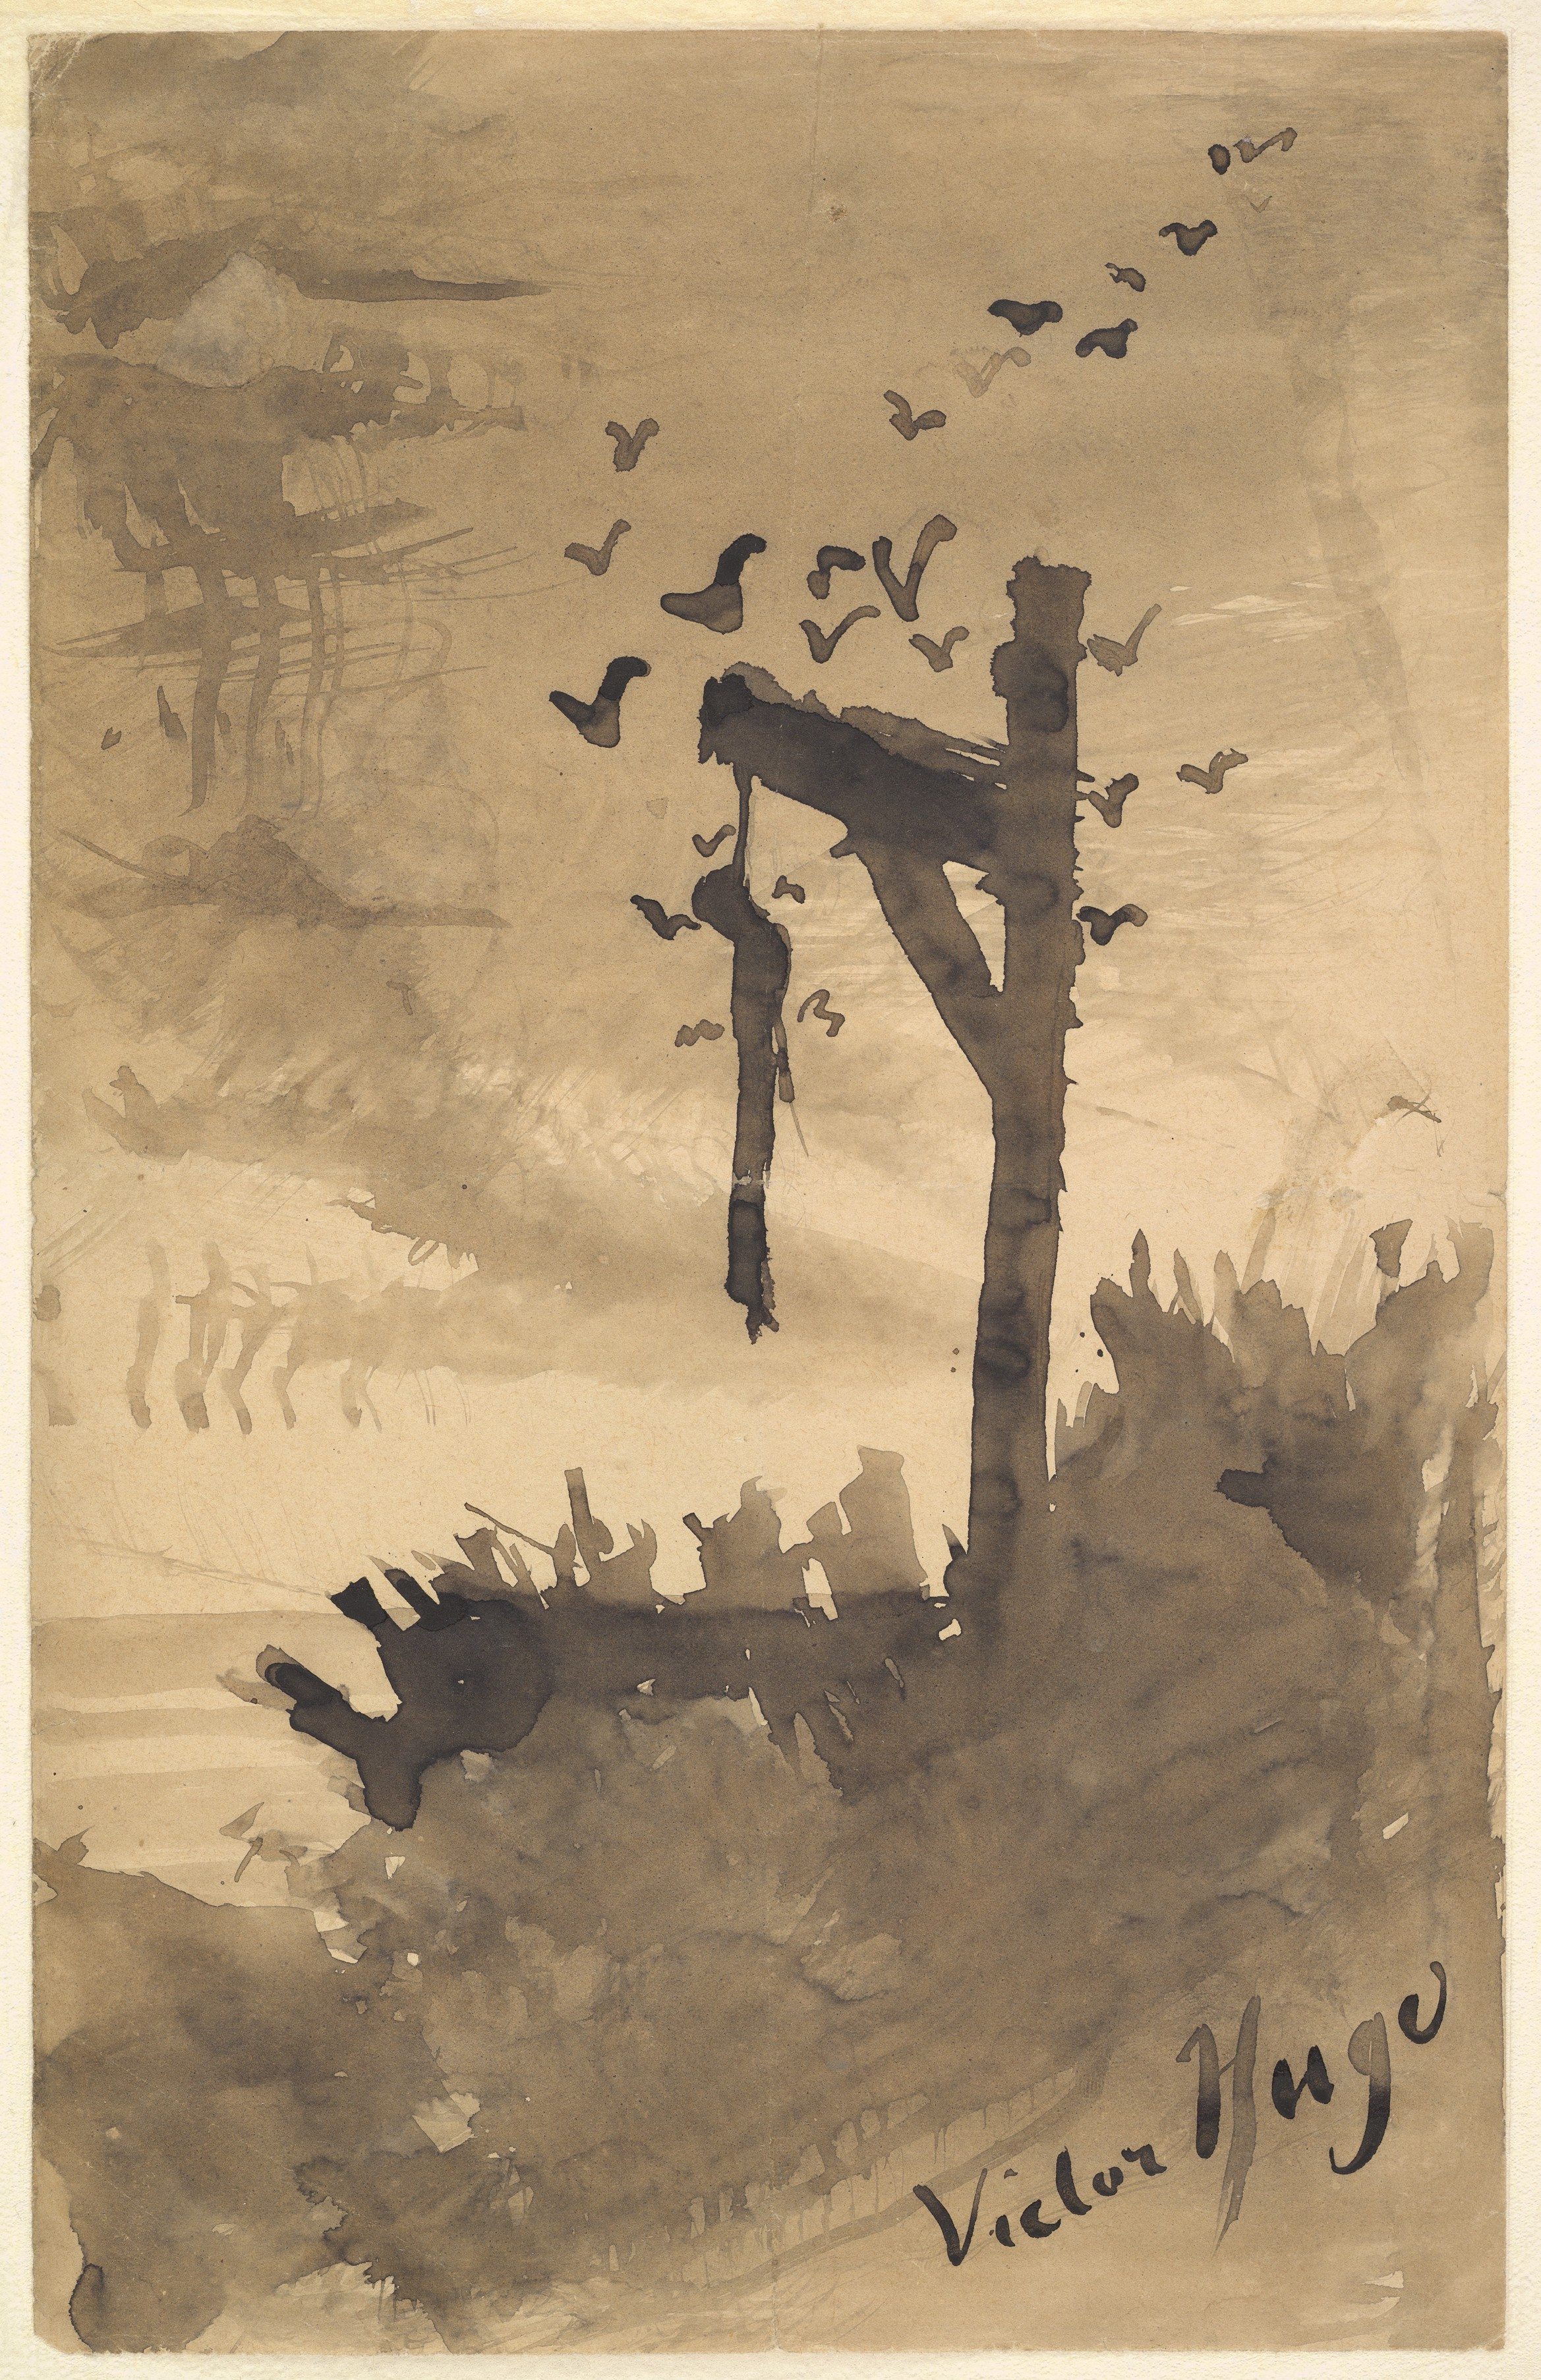 Victor Hugo, The Hanged Man (c. 1855-60). Brush and ink with wash over paper, 12 x 7 11/16 in. The Metropolitan Museum of Art, New York.